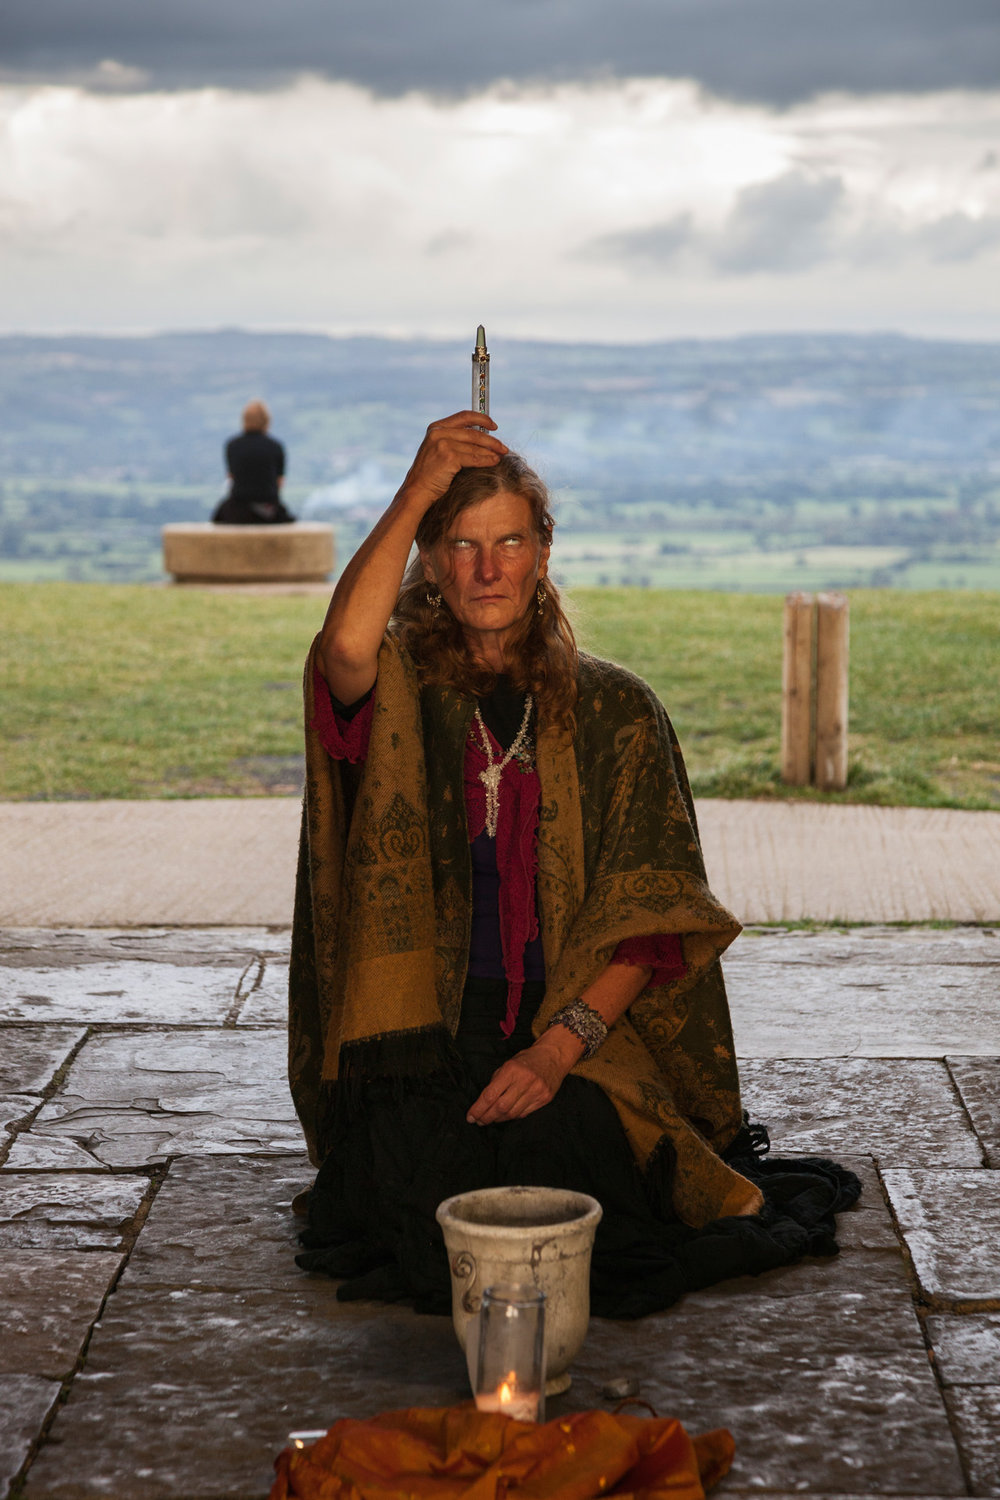 A woman performs a ritual inside the bell tower on Glastonbury Tor, believed to be the mythical entrance to Avalon, the land of fairies. For centuries, people in Glastonbury believe the legendary island of Avalon to be the final refuge for the wounded Arthur.  Glastonbury, England.